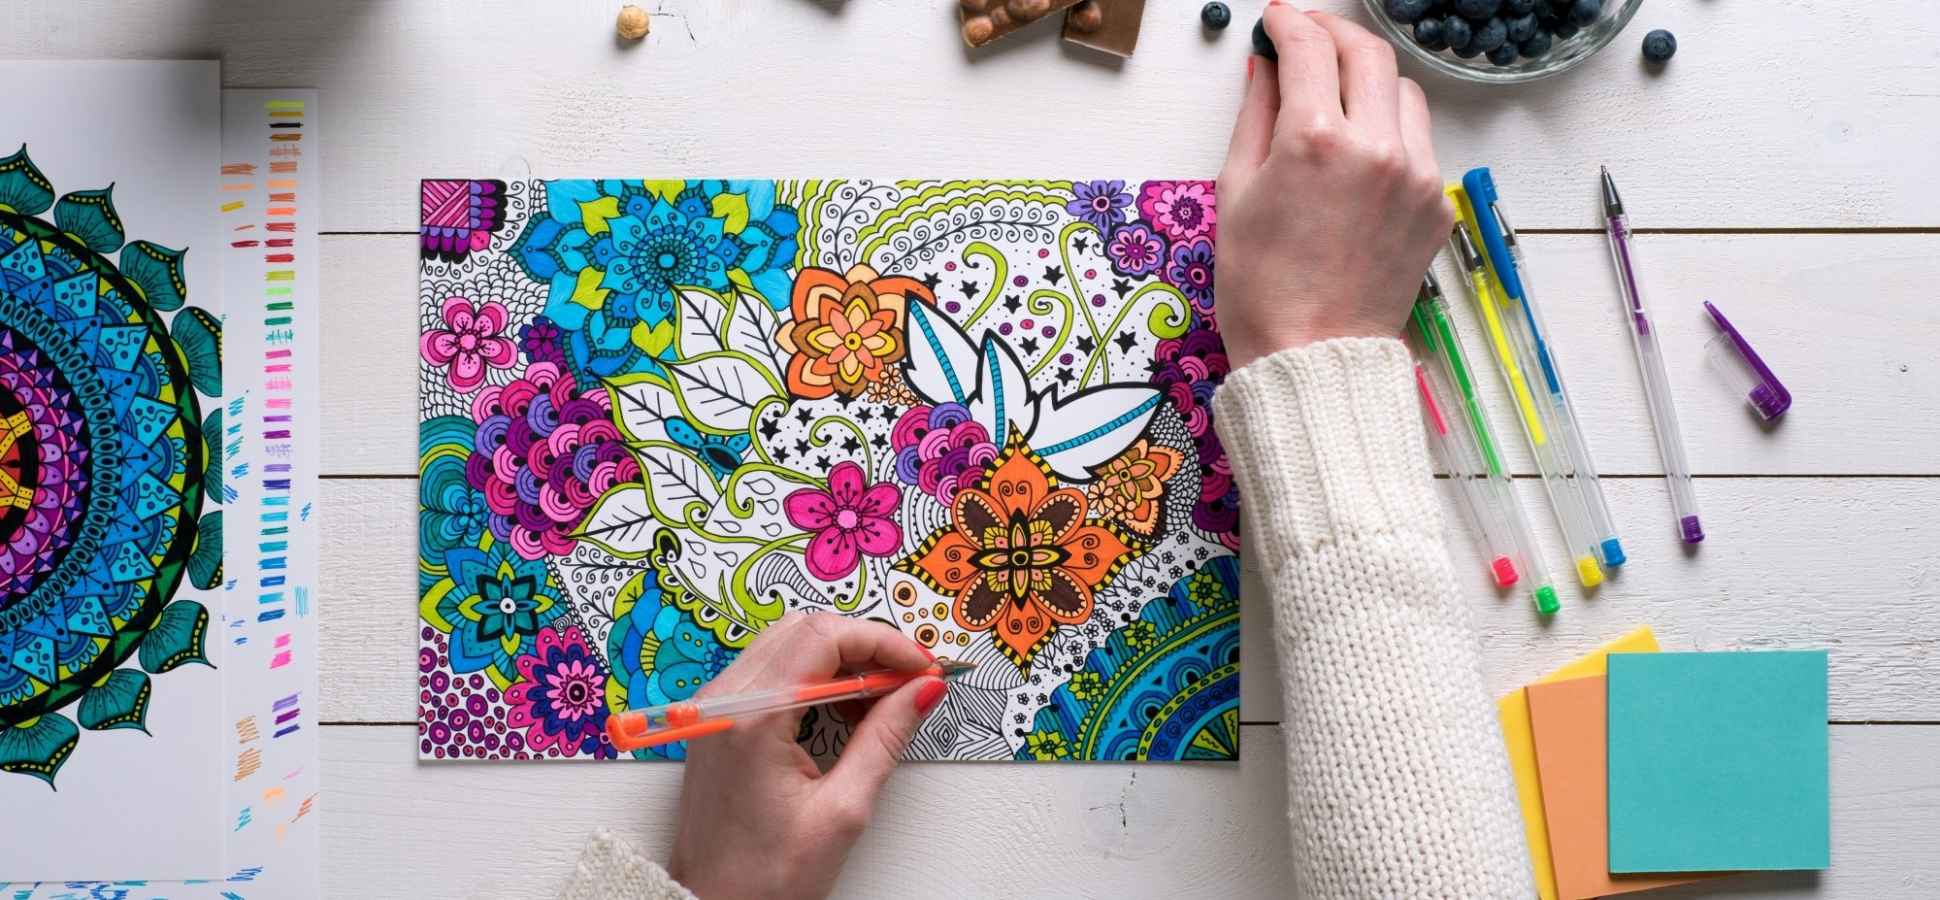 2 Creativity Hacks You Can Learn From the Adult Coloring Book Craze (Even If Coloring Isn't Your Thing)